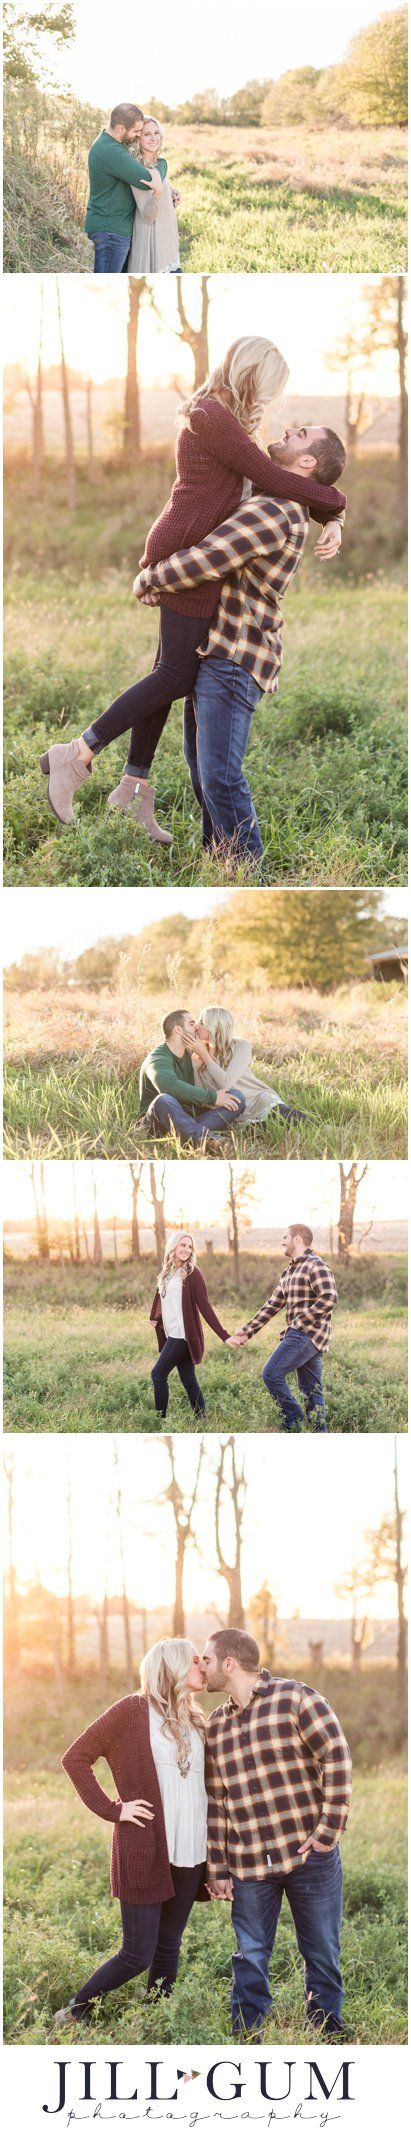 outdoor engagement session, sunset engagement session, glowy light engagement session, glowly light engagement photos, outdoor fall engagement photos, fall farm engagement session, outfit inspiration for fall engagement session, outfit inspiration for engagement session, farm engagement, what to wear to my engagement session, IL wedding photographer, IL engagement photographer, Jill Gum Photography, IL photographer, Central IL photographer